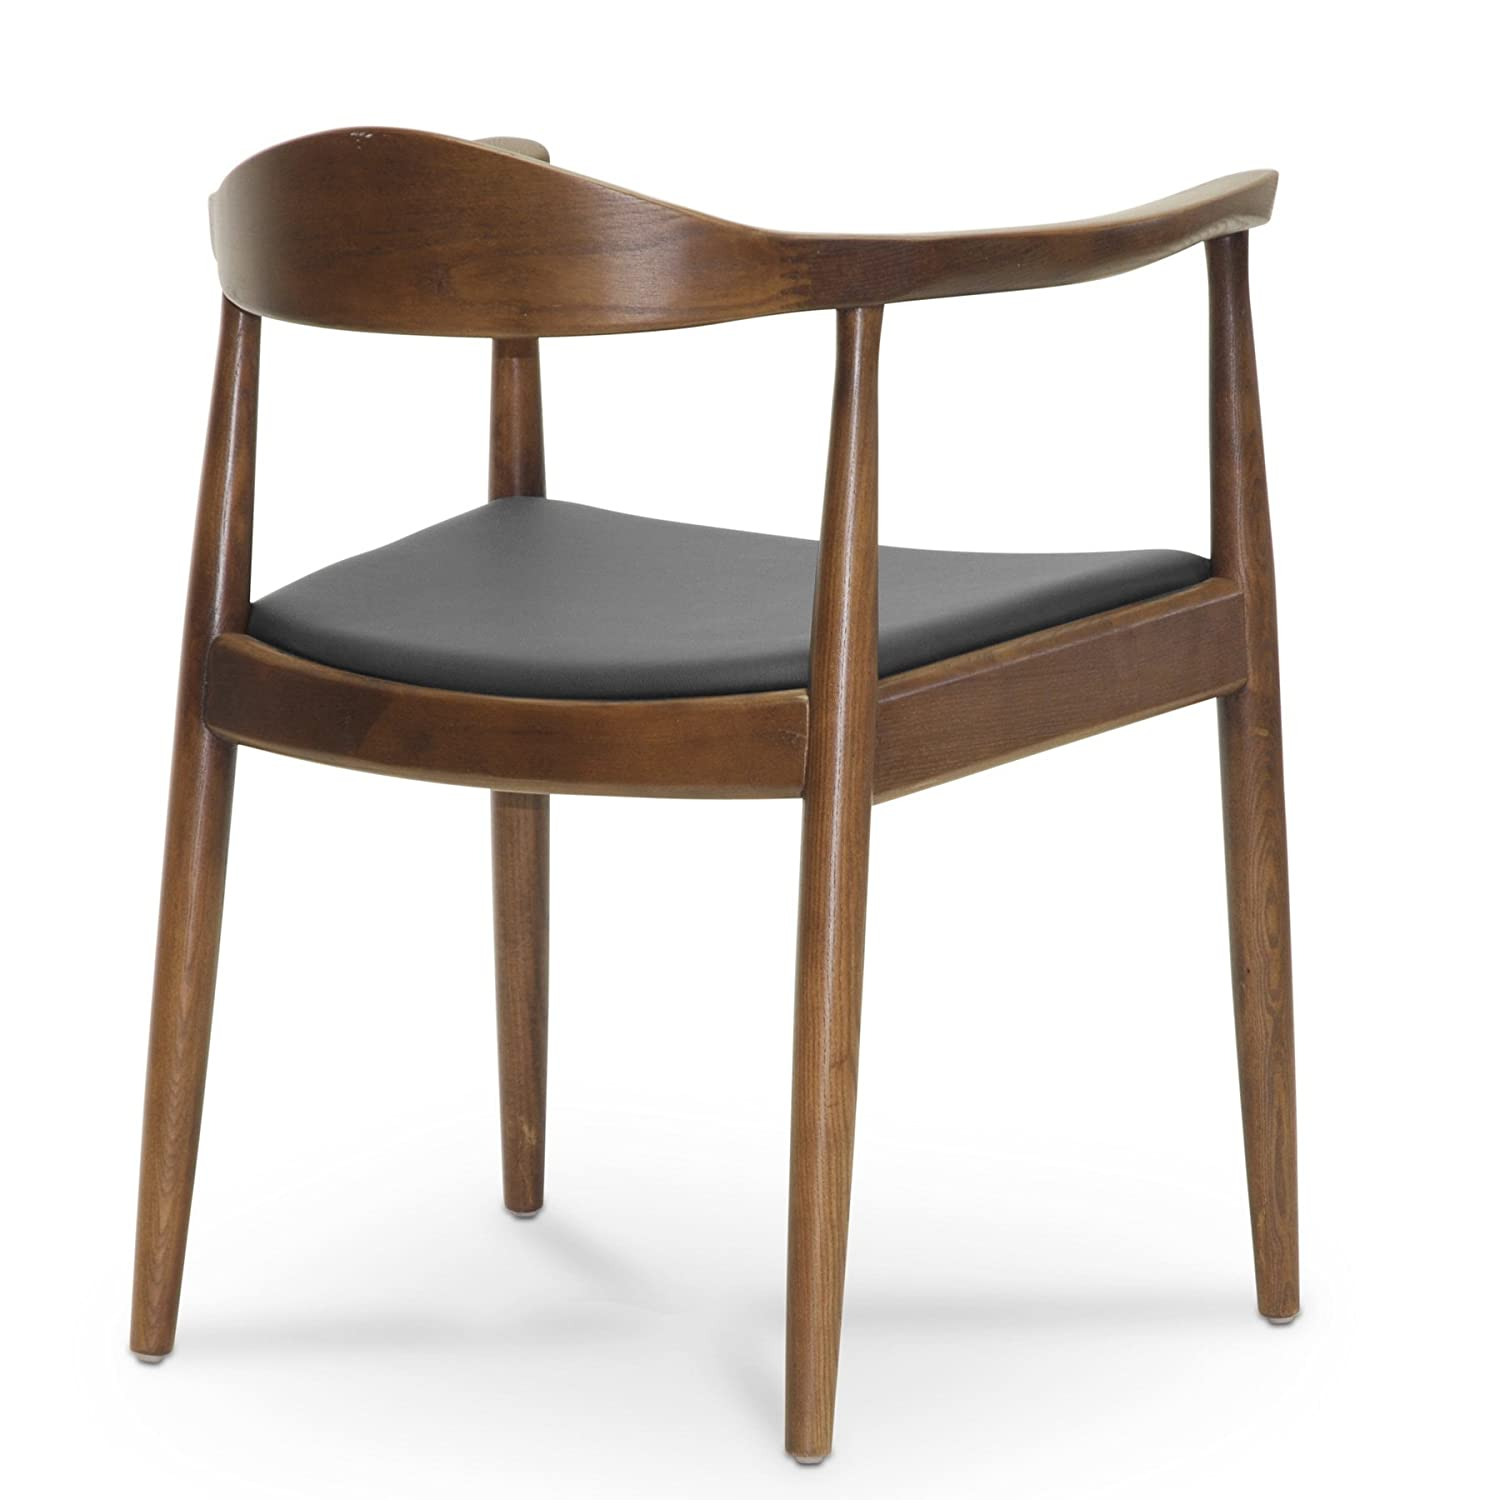 Charmant Amazon.com   Baxton Studio Embick Mid Century Modern Dining Chair   Chairs